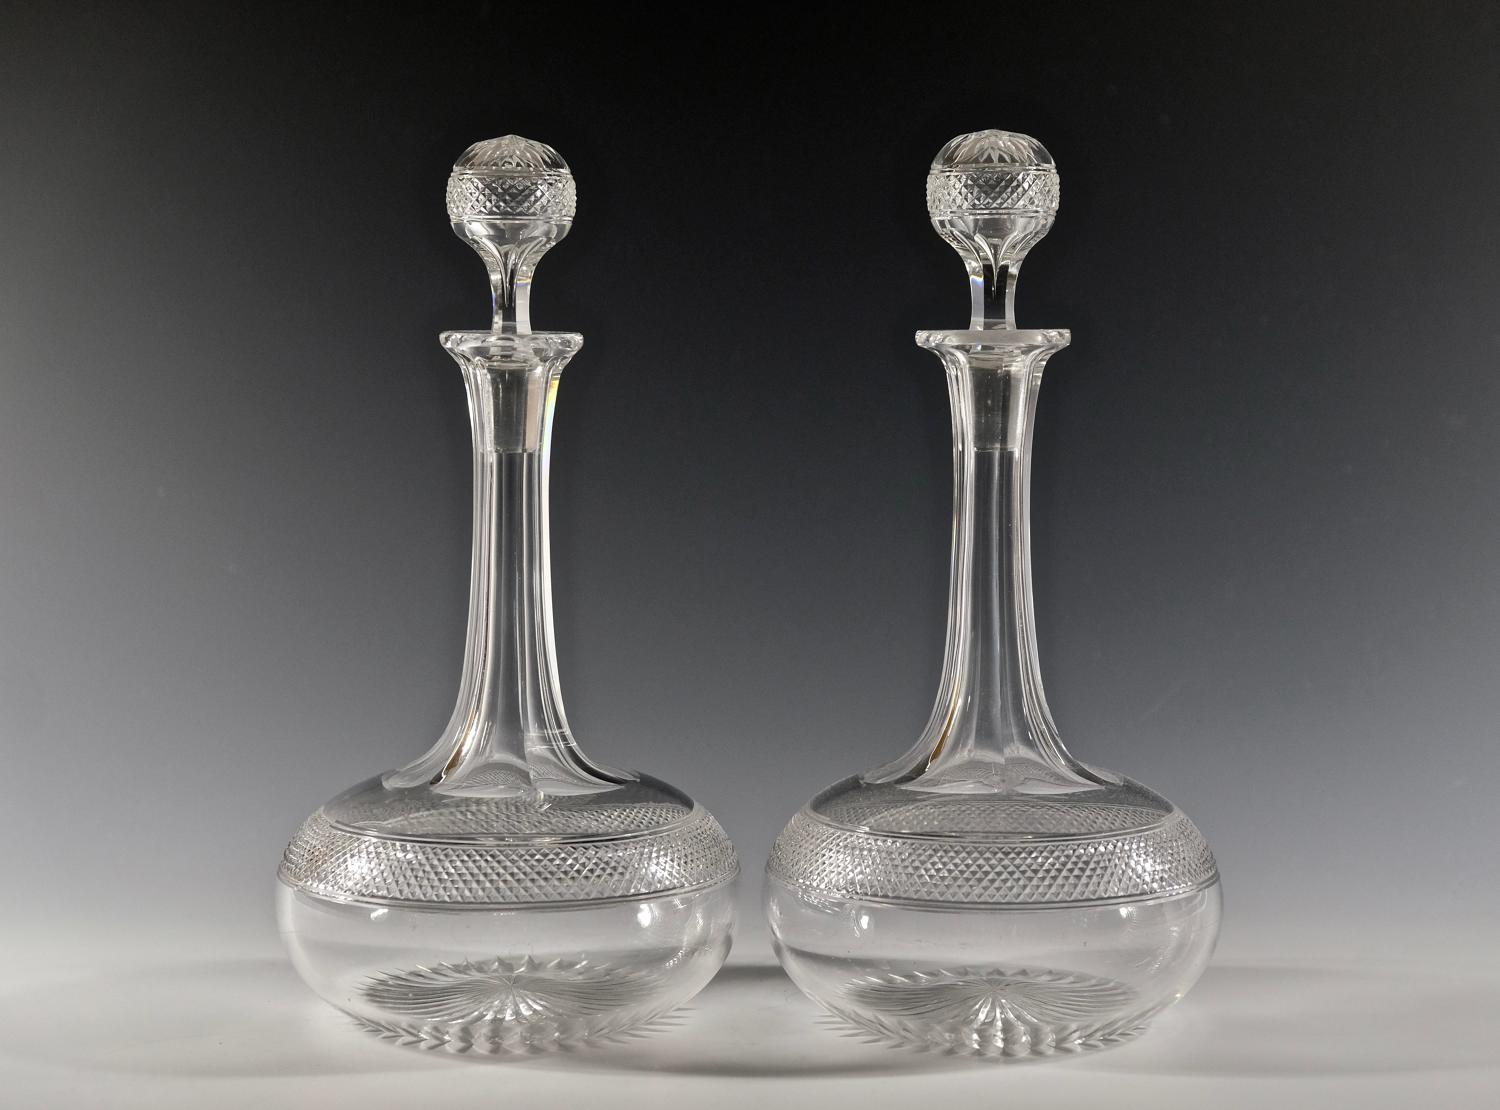 Pair of shaft & globe decanters English C1880